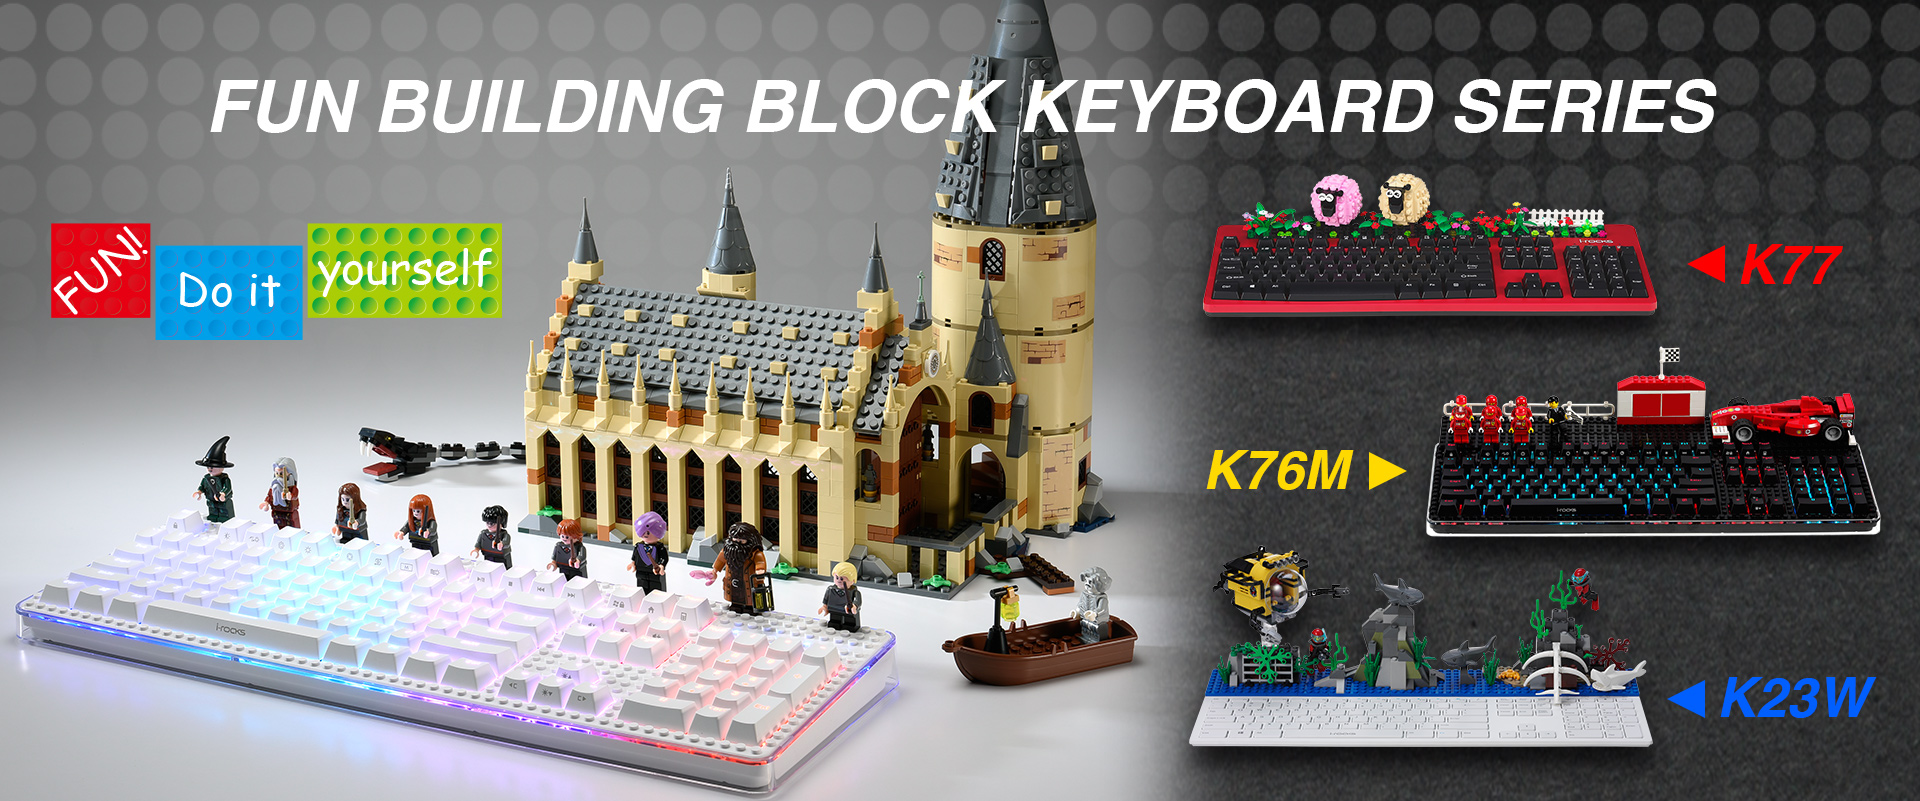 FUN BUILDING BLOCK KEYBOARD SERIES